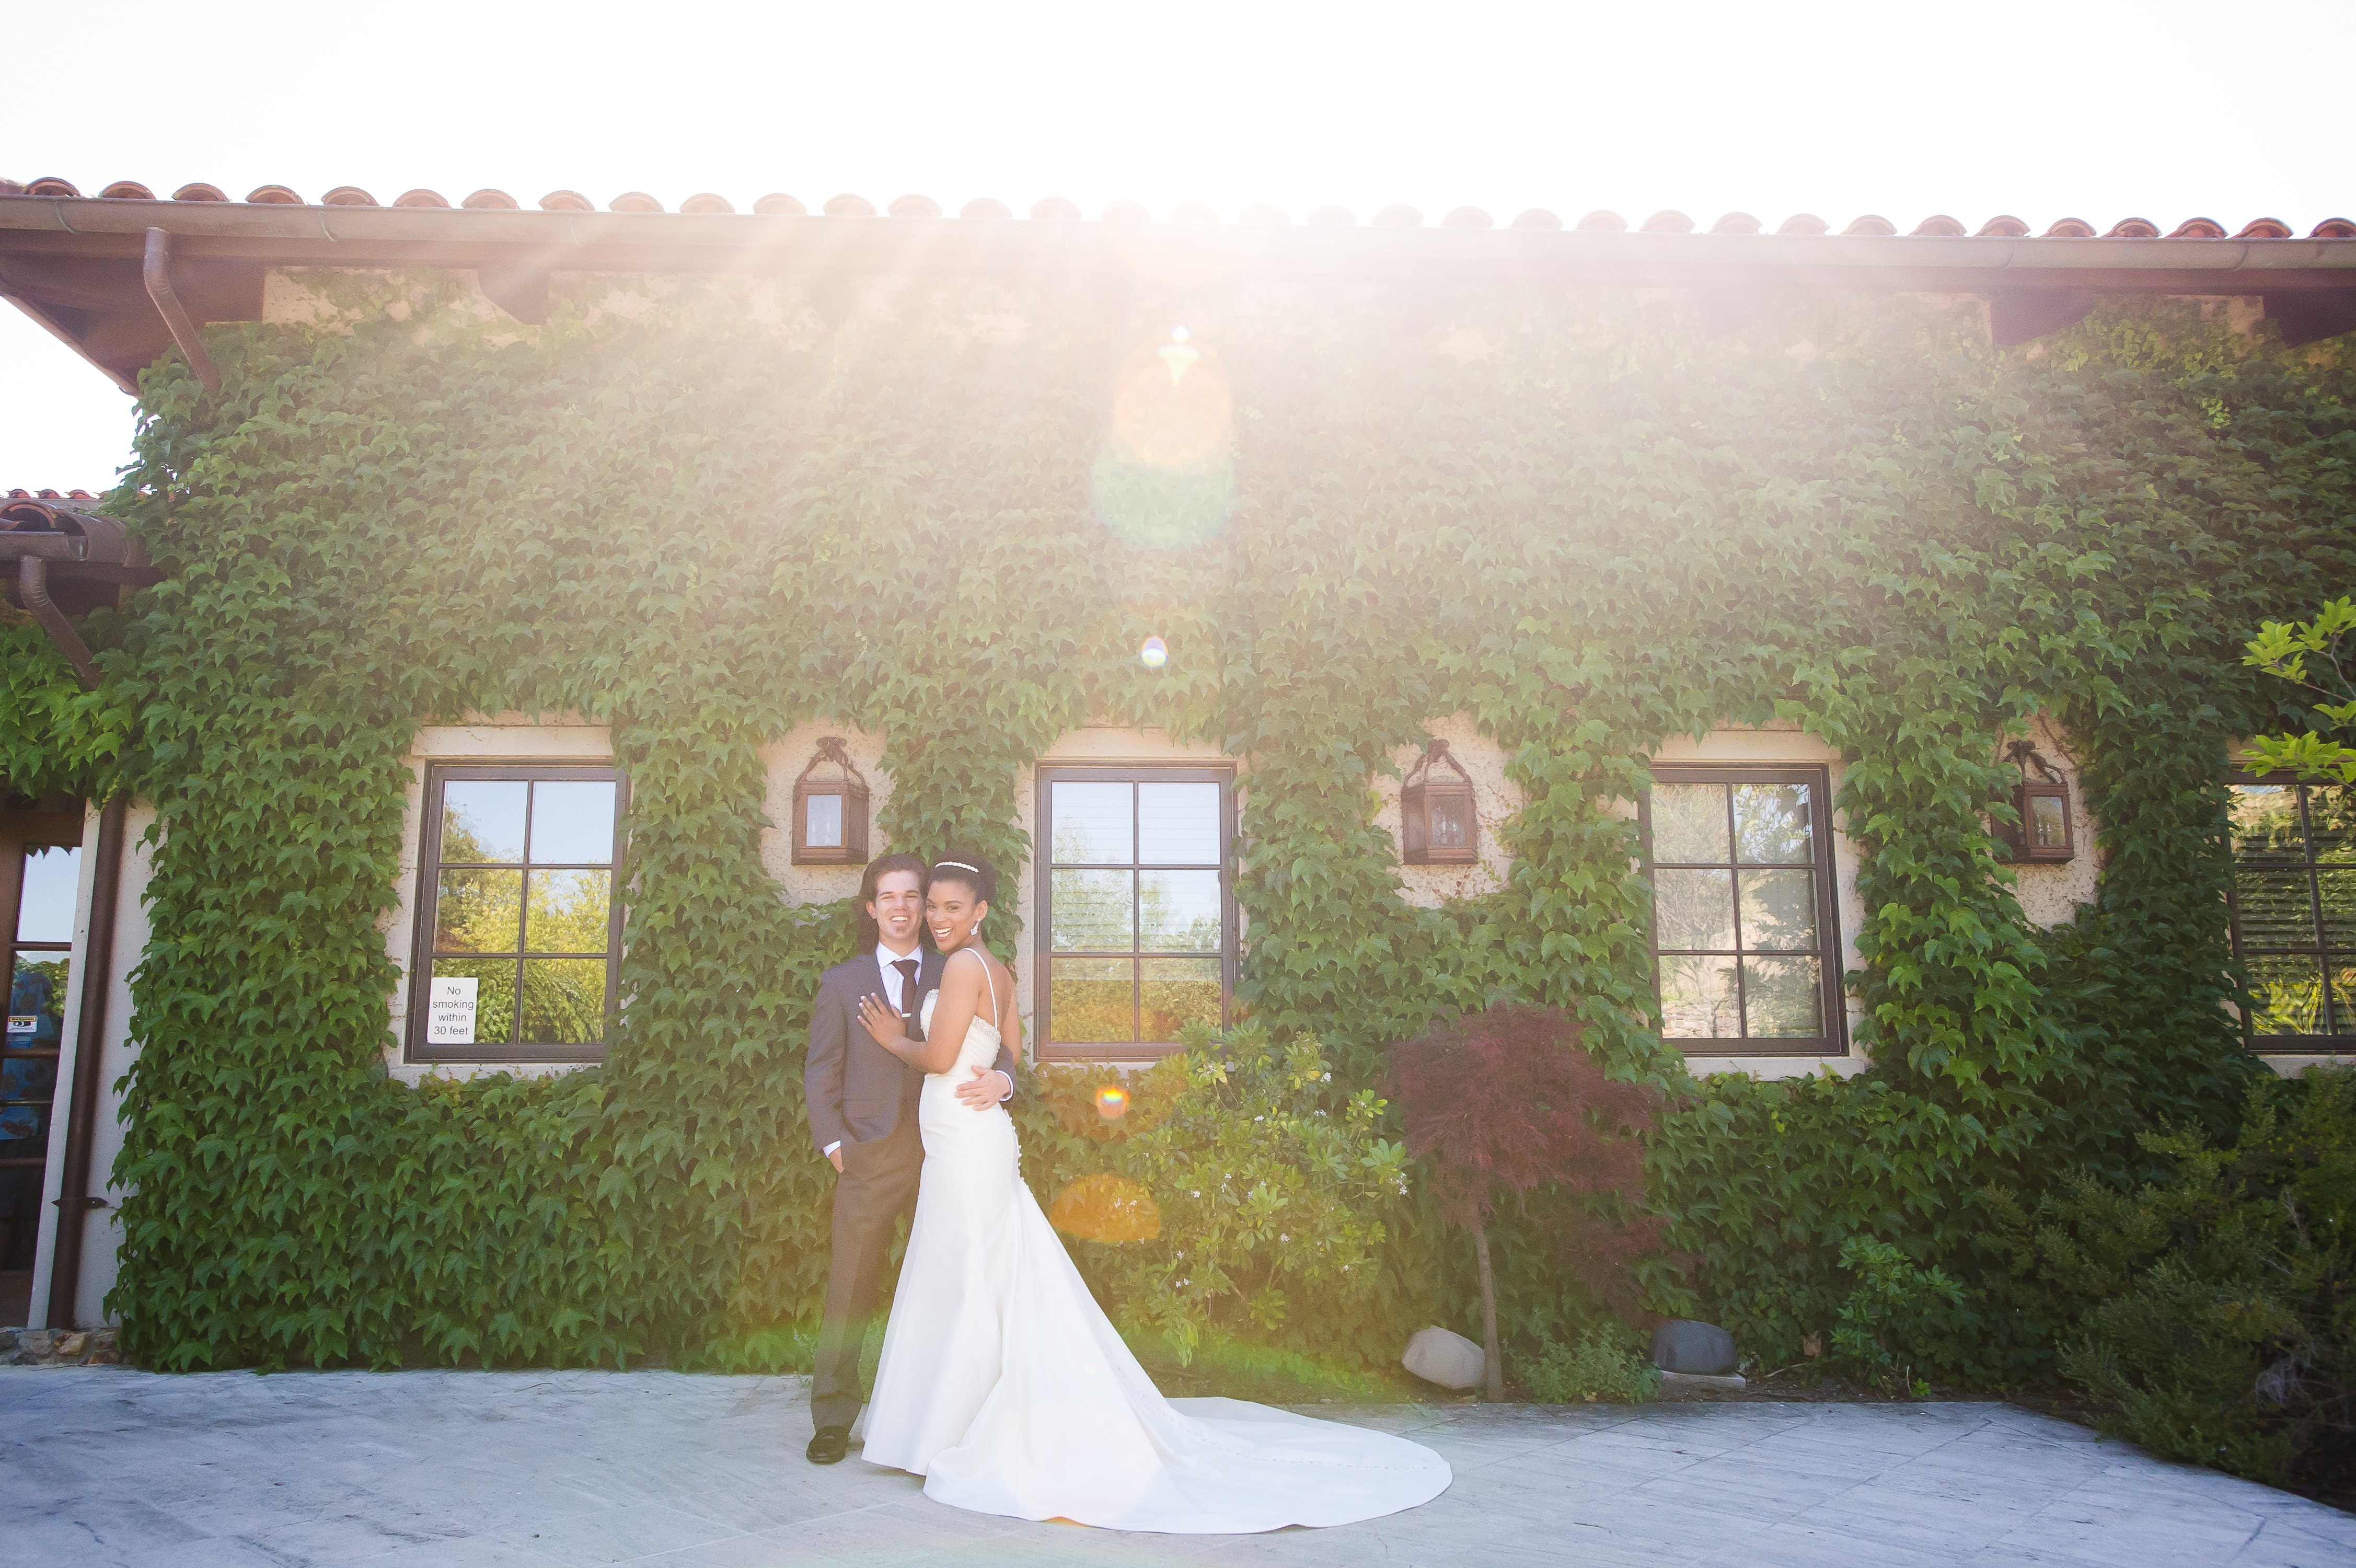 Bride and groom embracing outside at clos la chance winery wedding